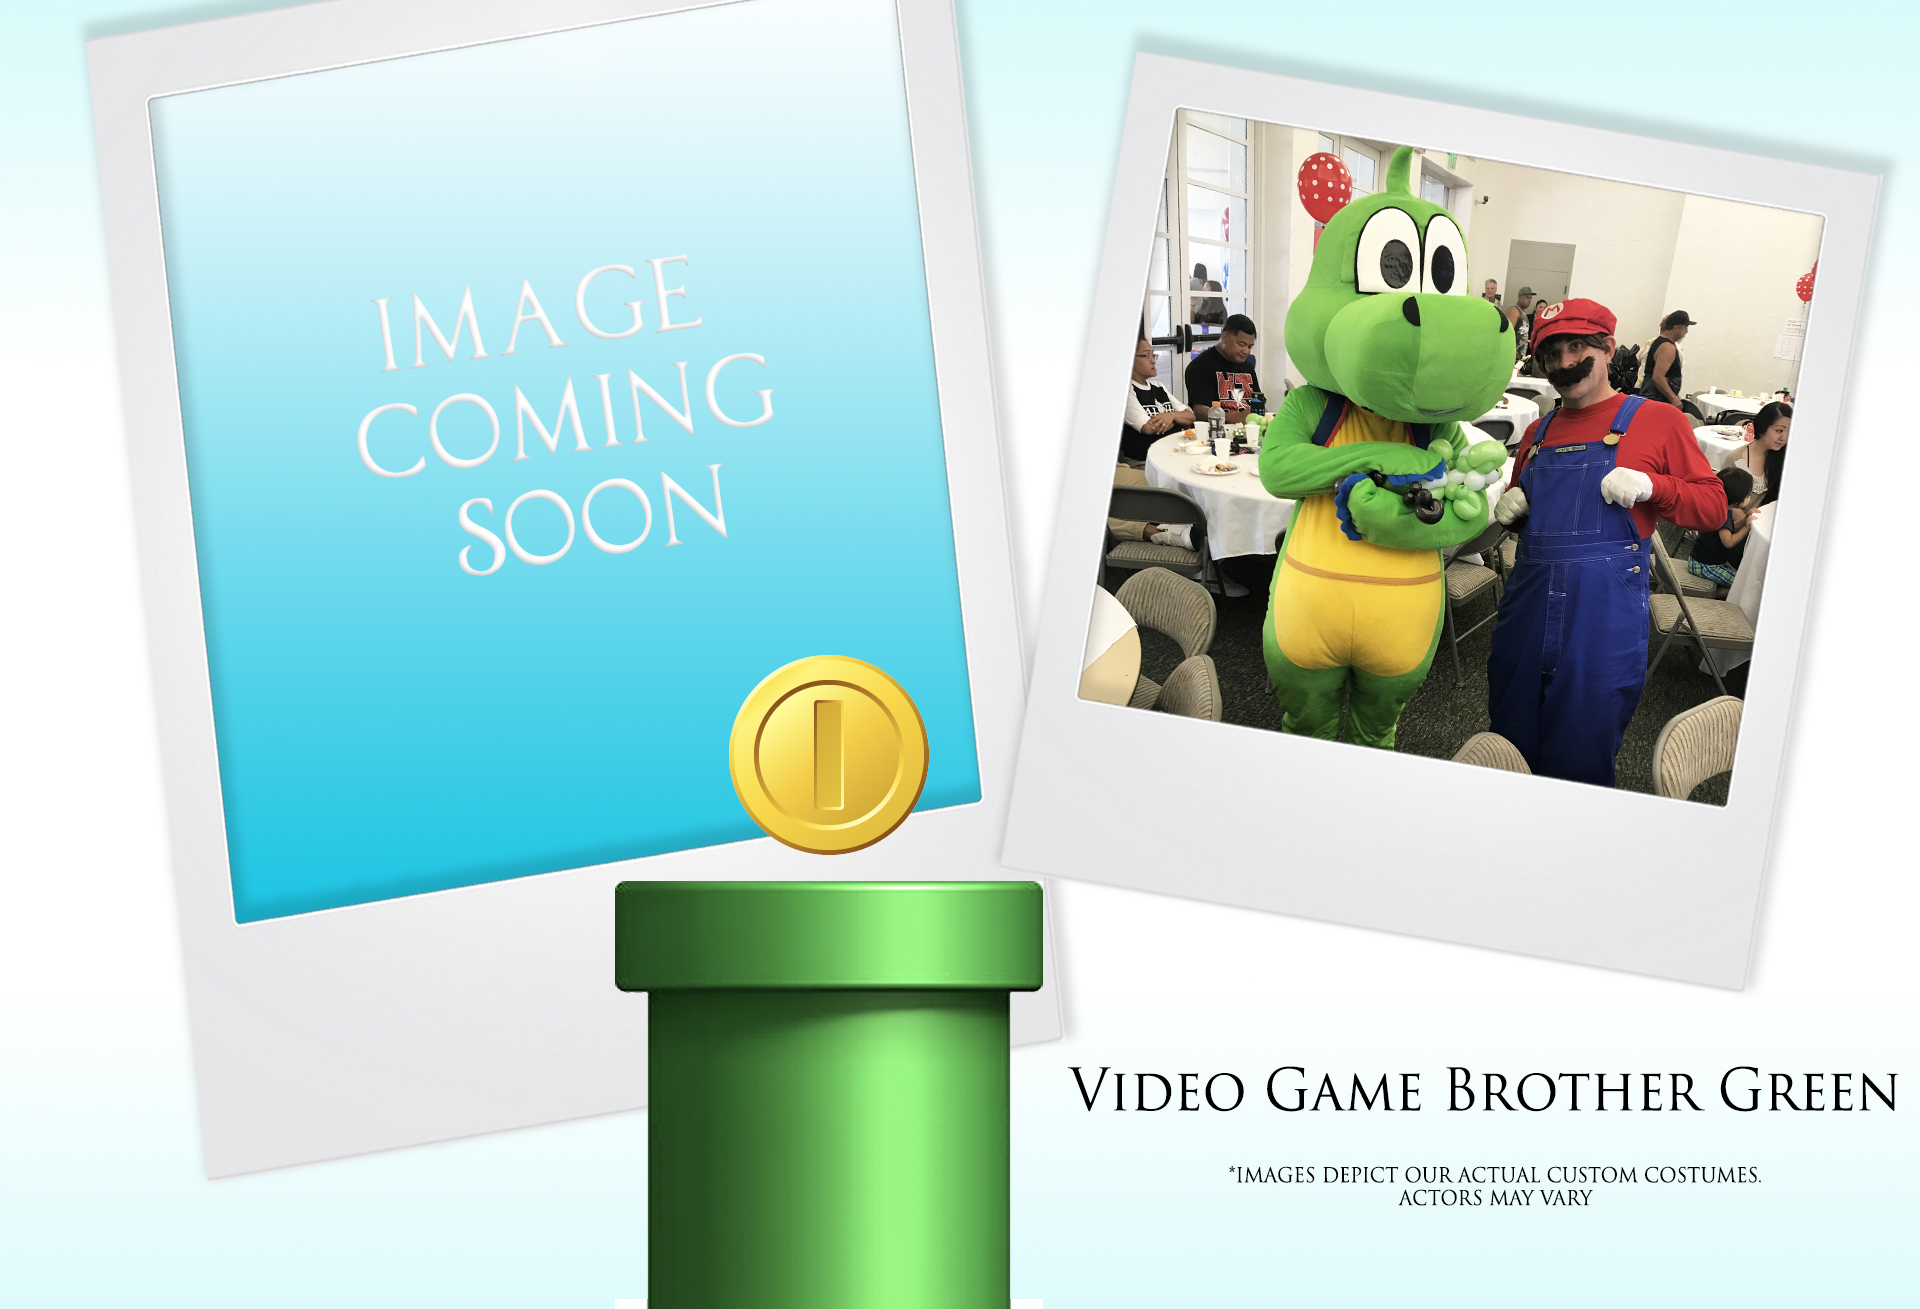 Video Game Brother Green